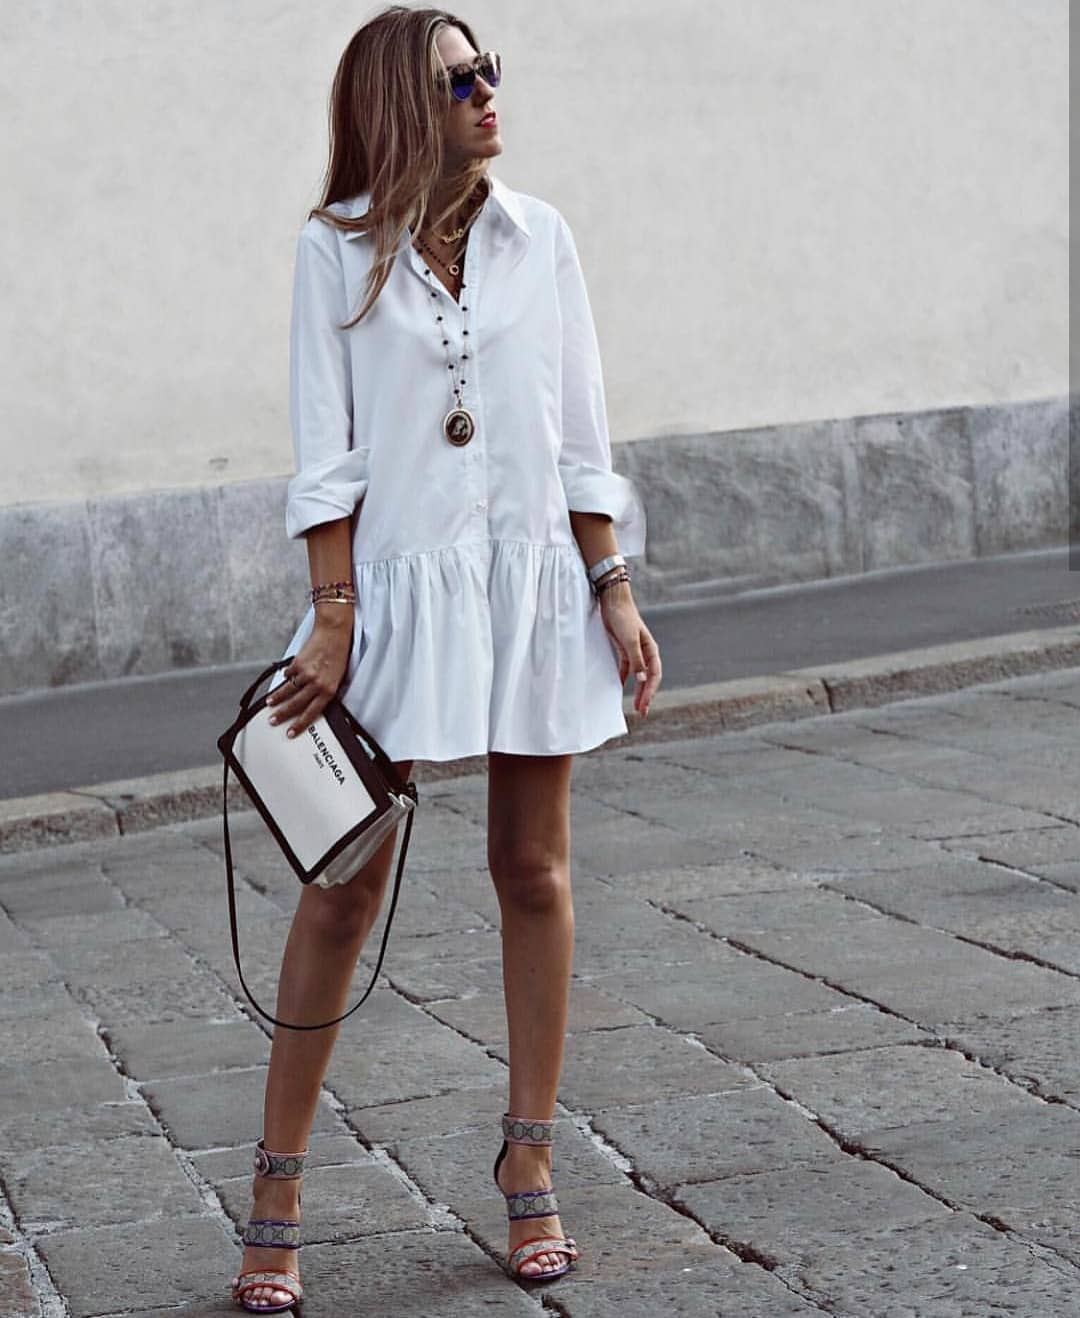 How To Complete Long Sleeve Shirtdress In White For Summer 2020